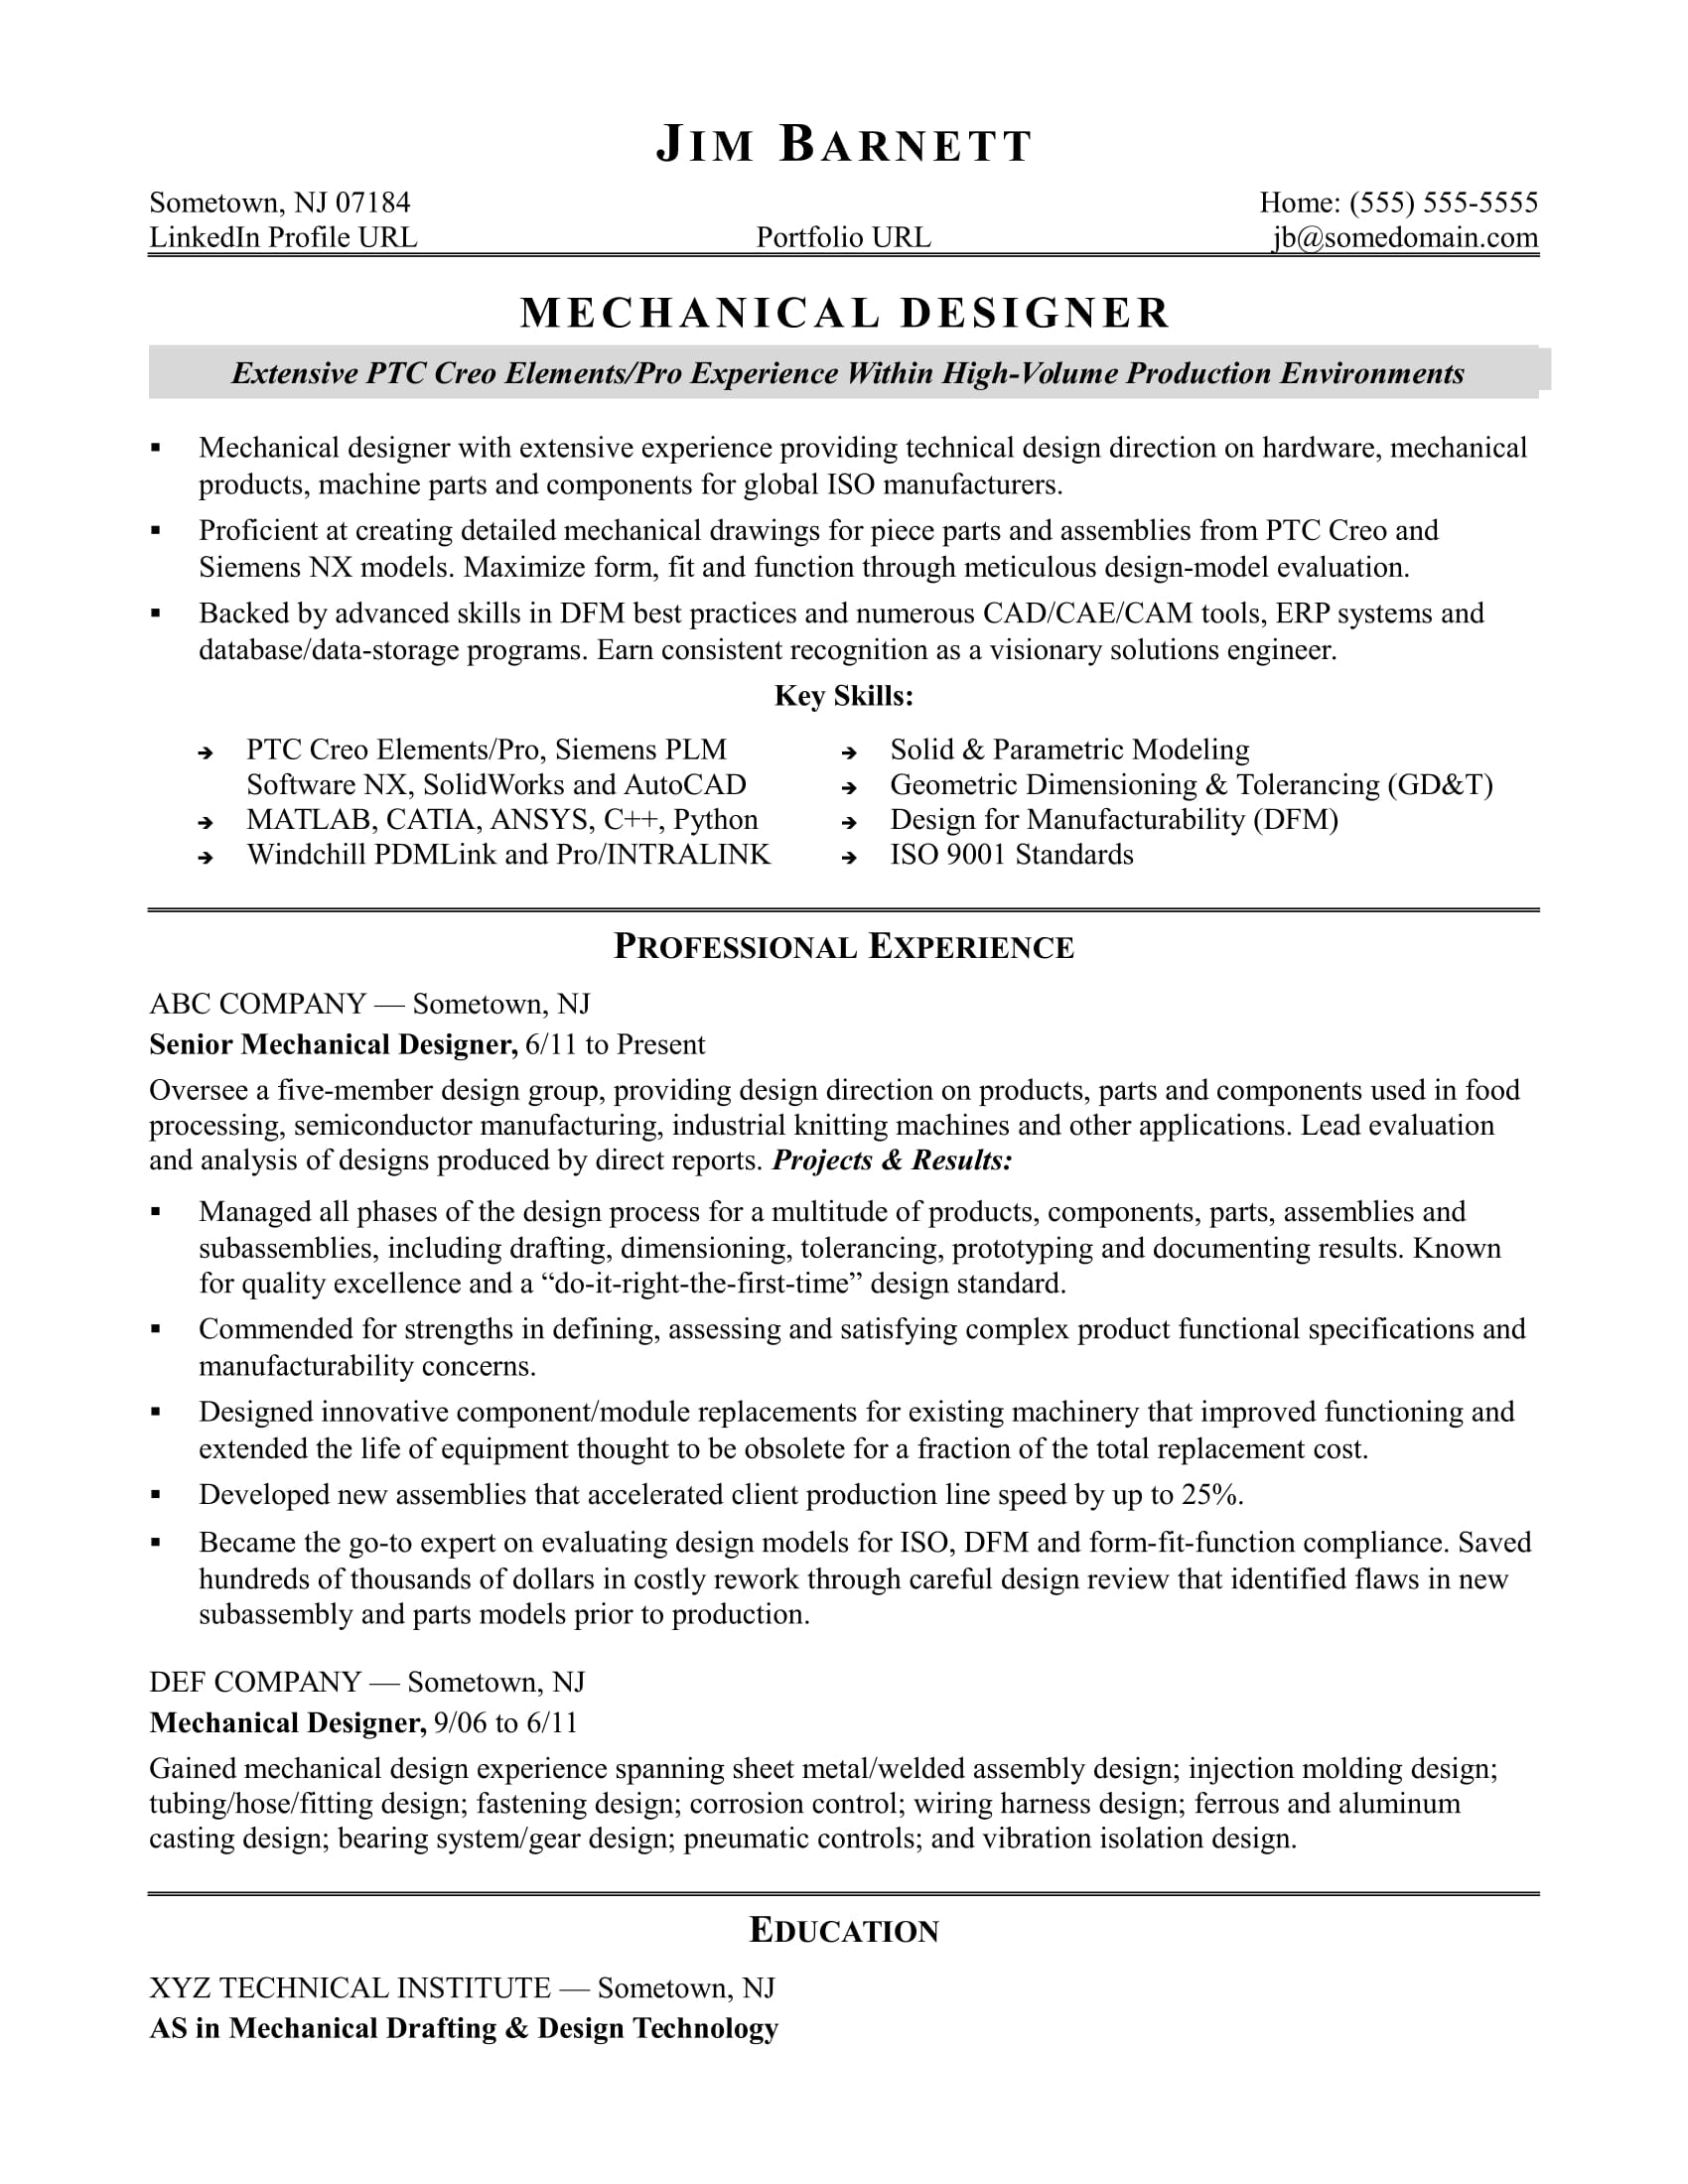 sample resume for an experienced mechanical designer monster drafter example police Resume Cad Drafter Resume Example